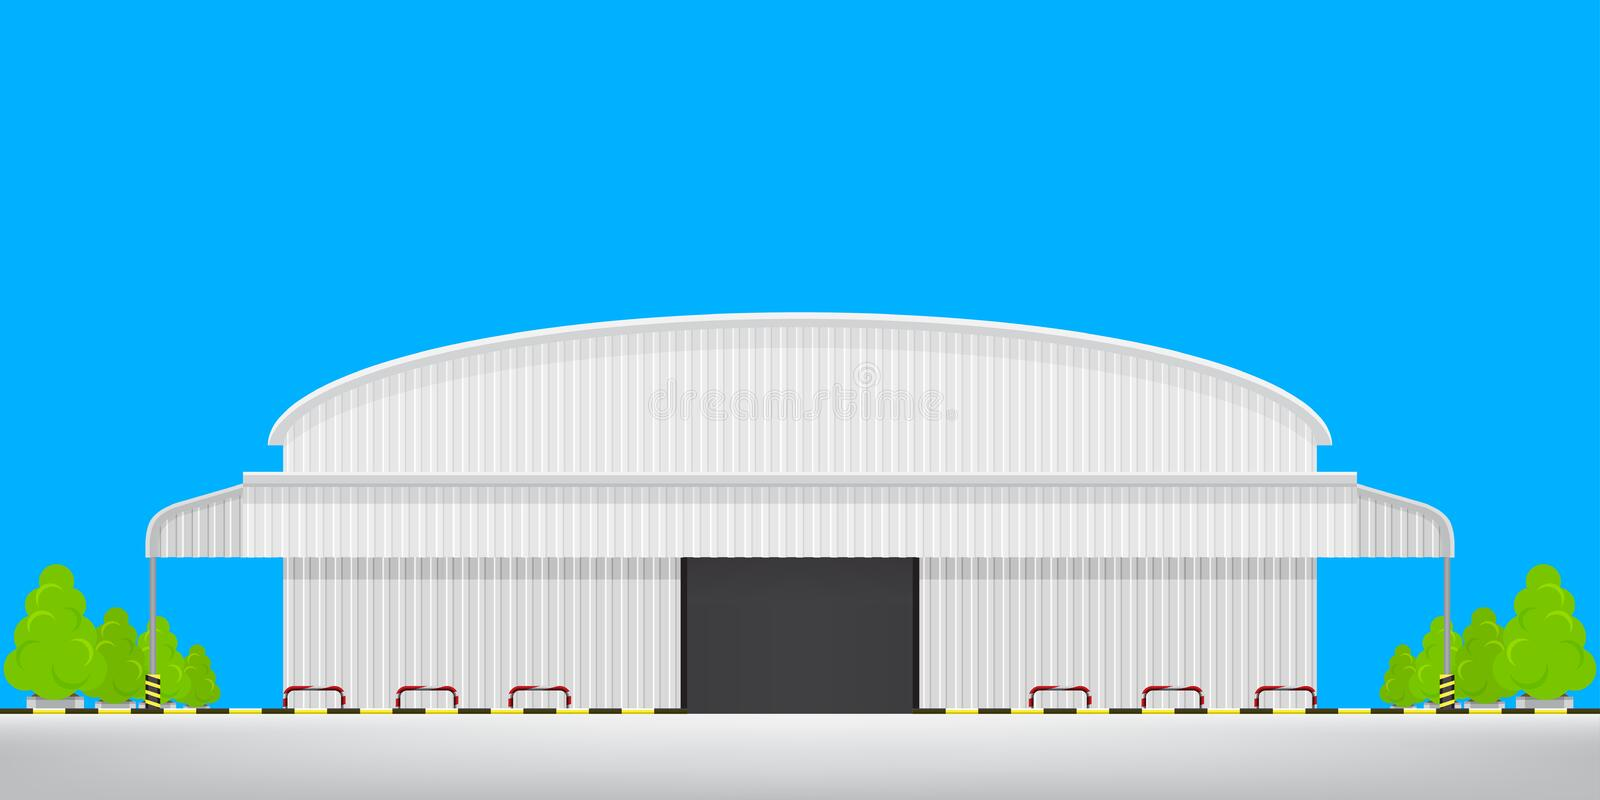 Warehouse factory front view isolated on blue, logistic storehouse of factory empty floor outside, warehouse factory building royalty free illustration